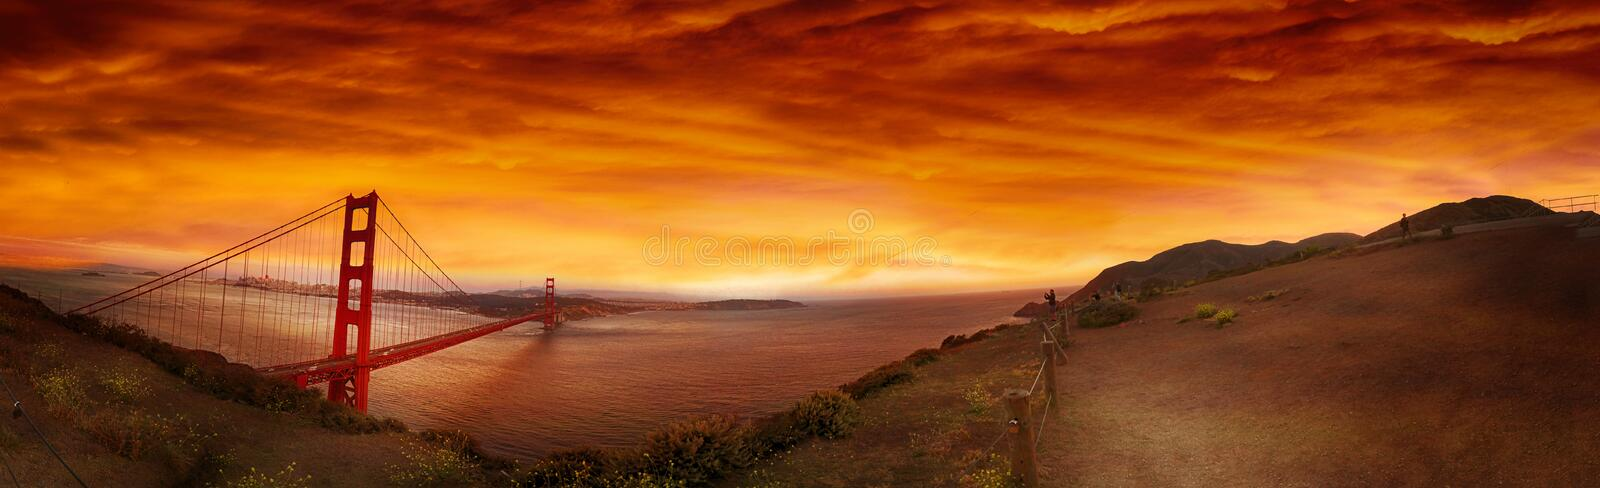 Golden gate bridge, San Francisco, la Californie au coucher du soleil image stock